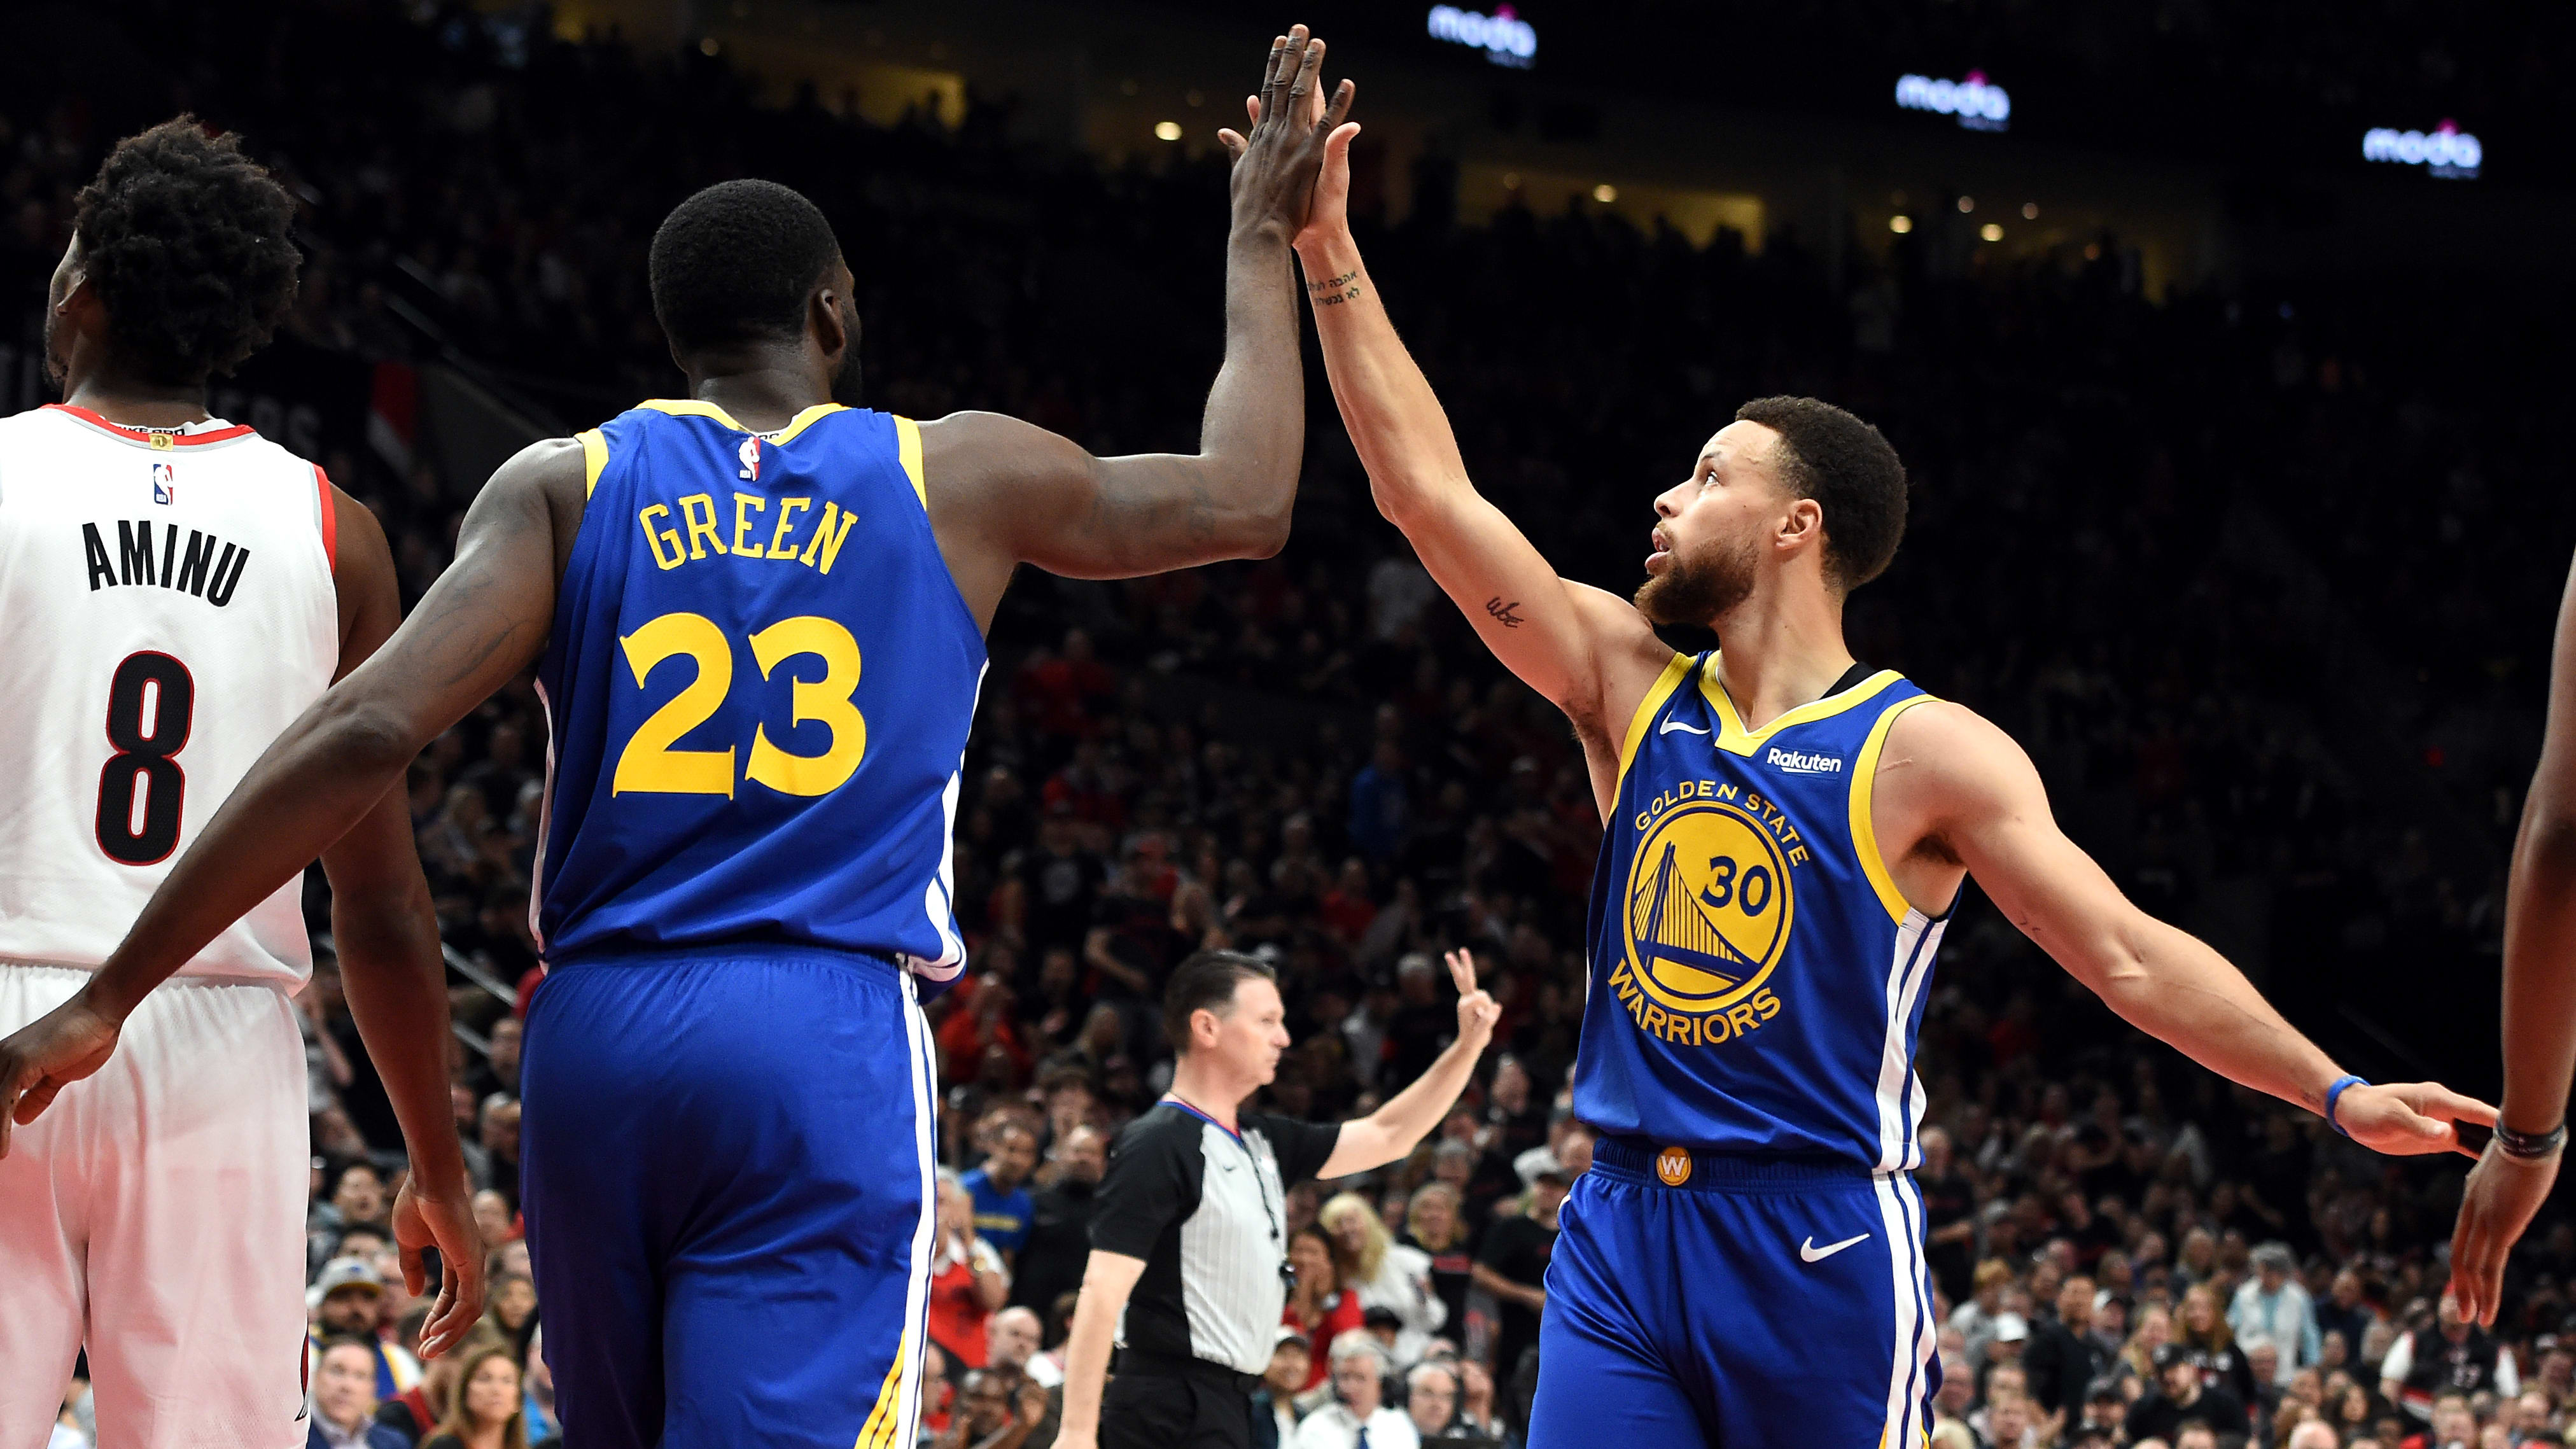 PORTLAND, OREGON - MAY 18: Stephen Curry #30 of the Golden State Warriors high fives Draymond Green #23 during the first half against the Portland Trail Blazers in game three of the NBA Western Conference Finals at Moda Center on May 18, 2019 in Portland, Oregon. NOTE TO USER: User expressly acknowledges and agrees that, by downloading and or using this photograph, User is consenting to the terms and conditions of the Getty Images License Agreement. (Photo by Steve Dykes/Getty Images)